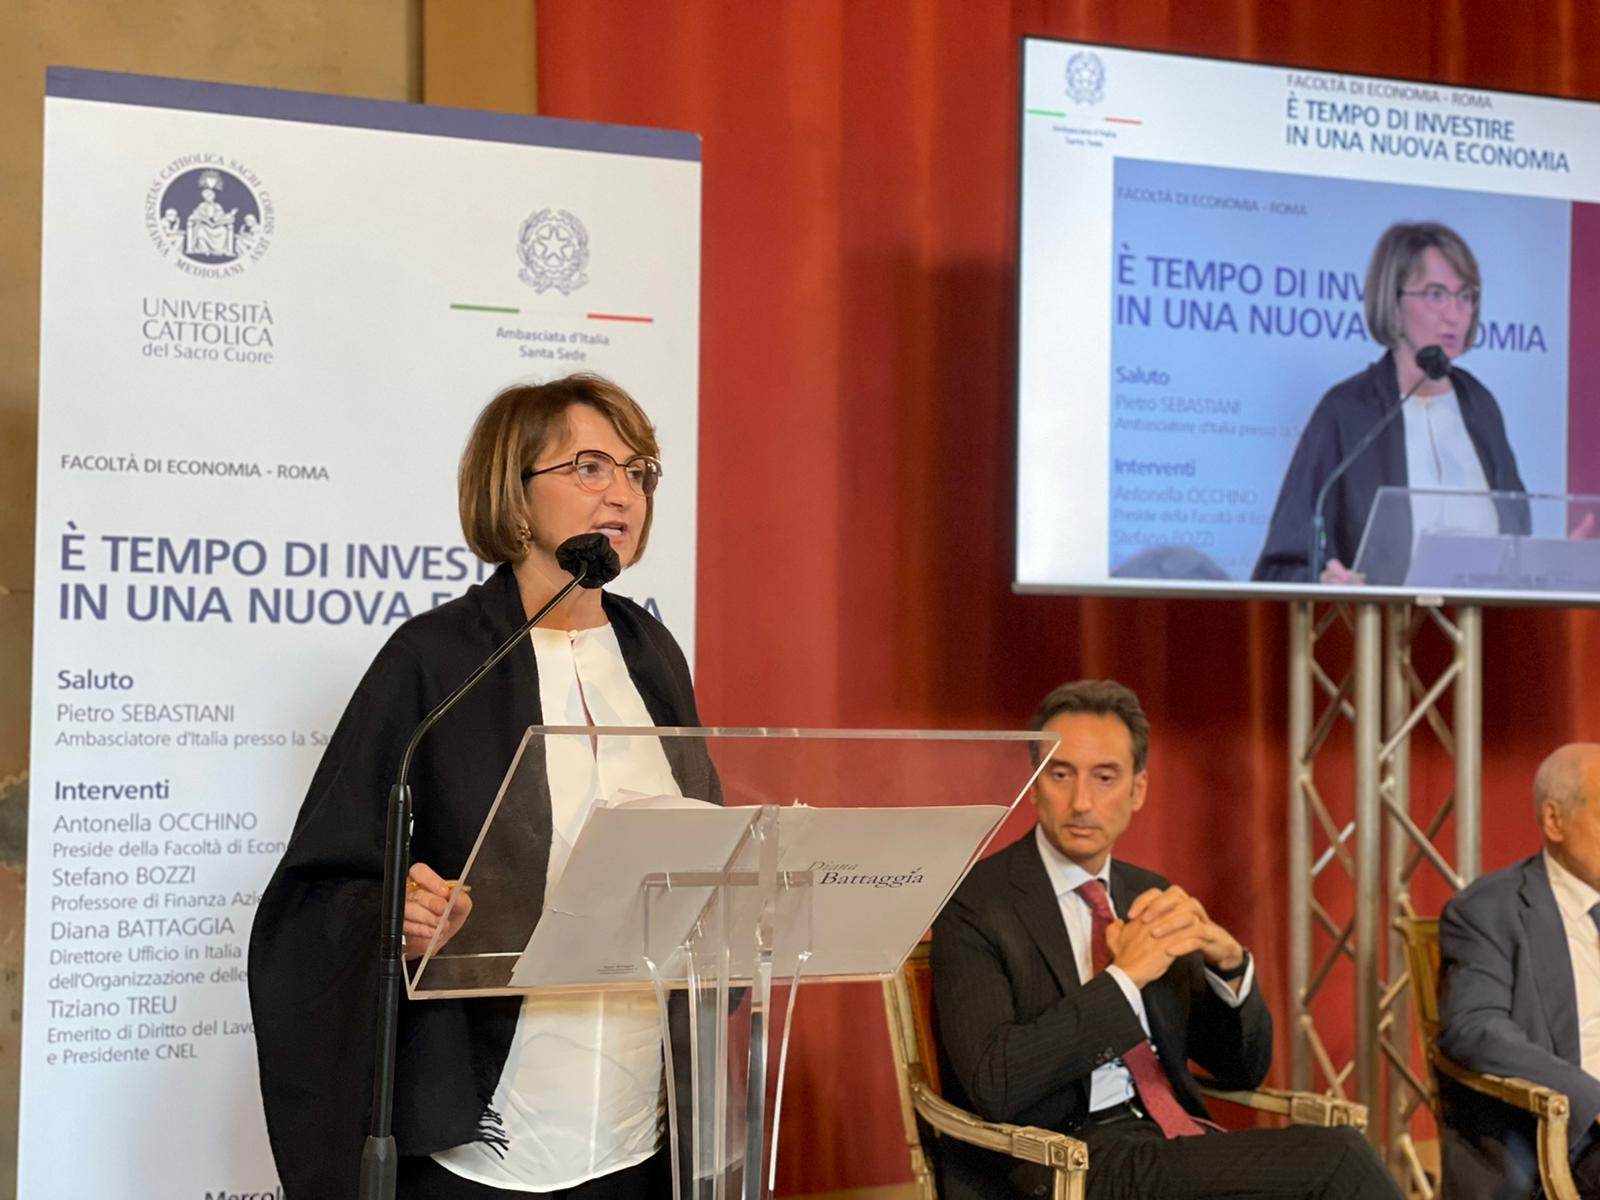 Università Cattolica and the Embassy of Italy to the Holy See: